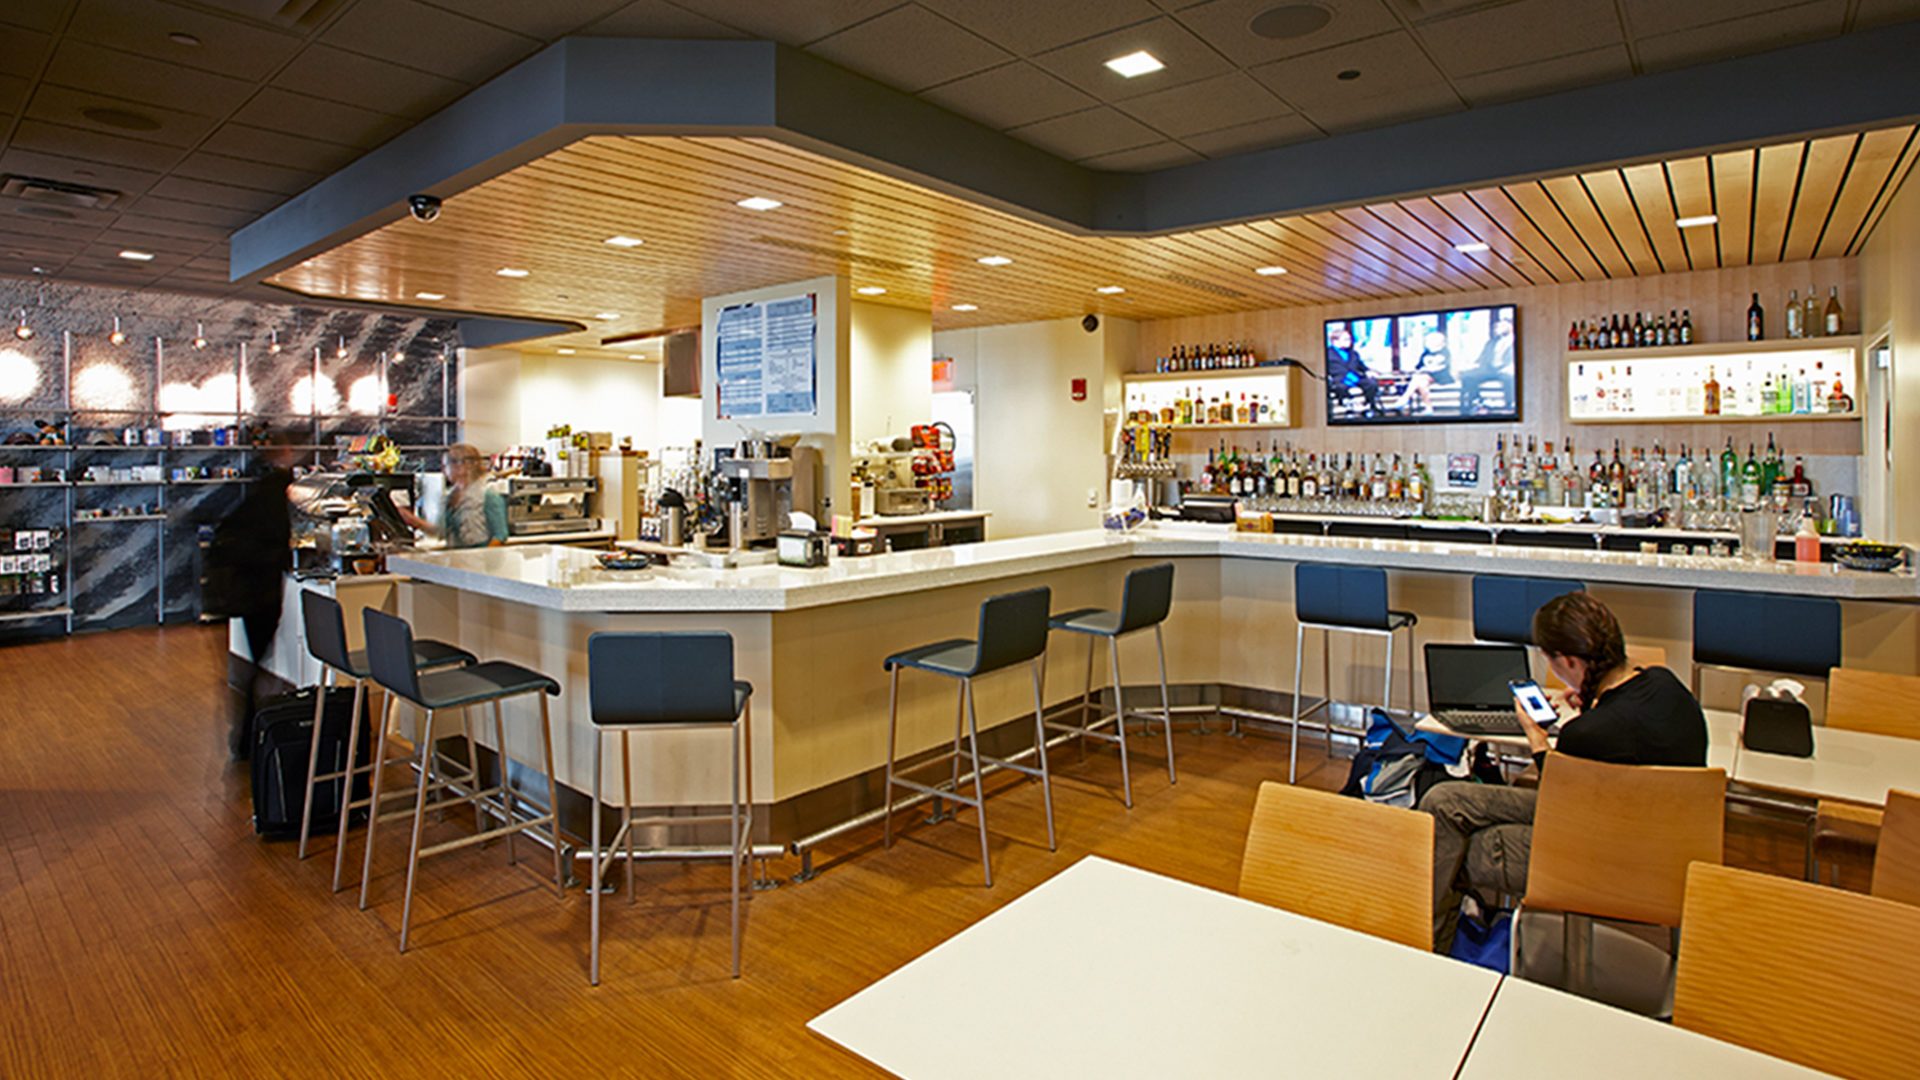 Duluth International Airport Terminal Interior Cafe and Bar